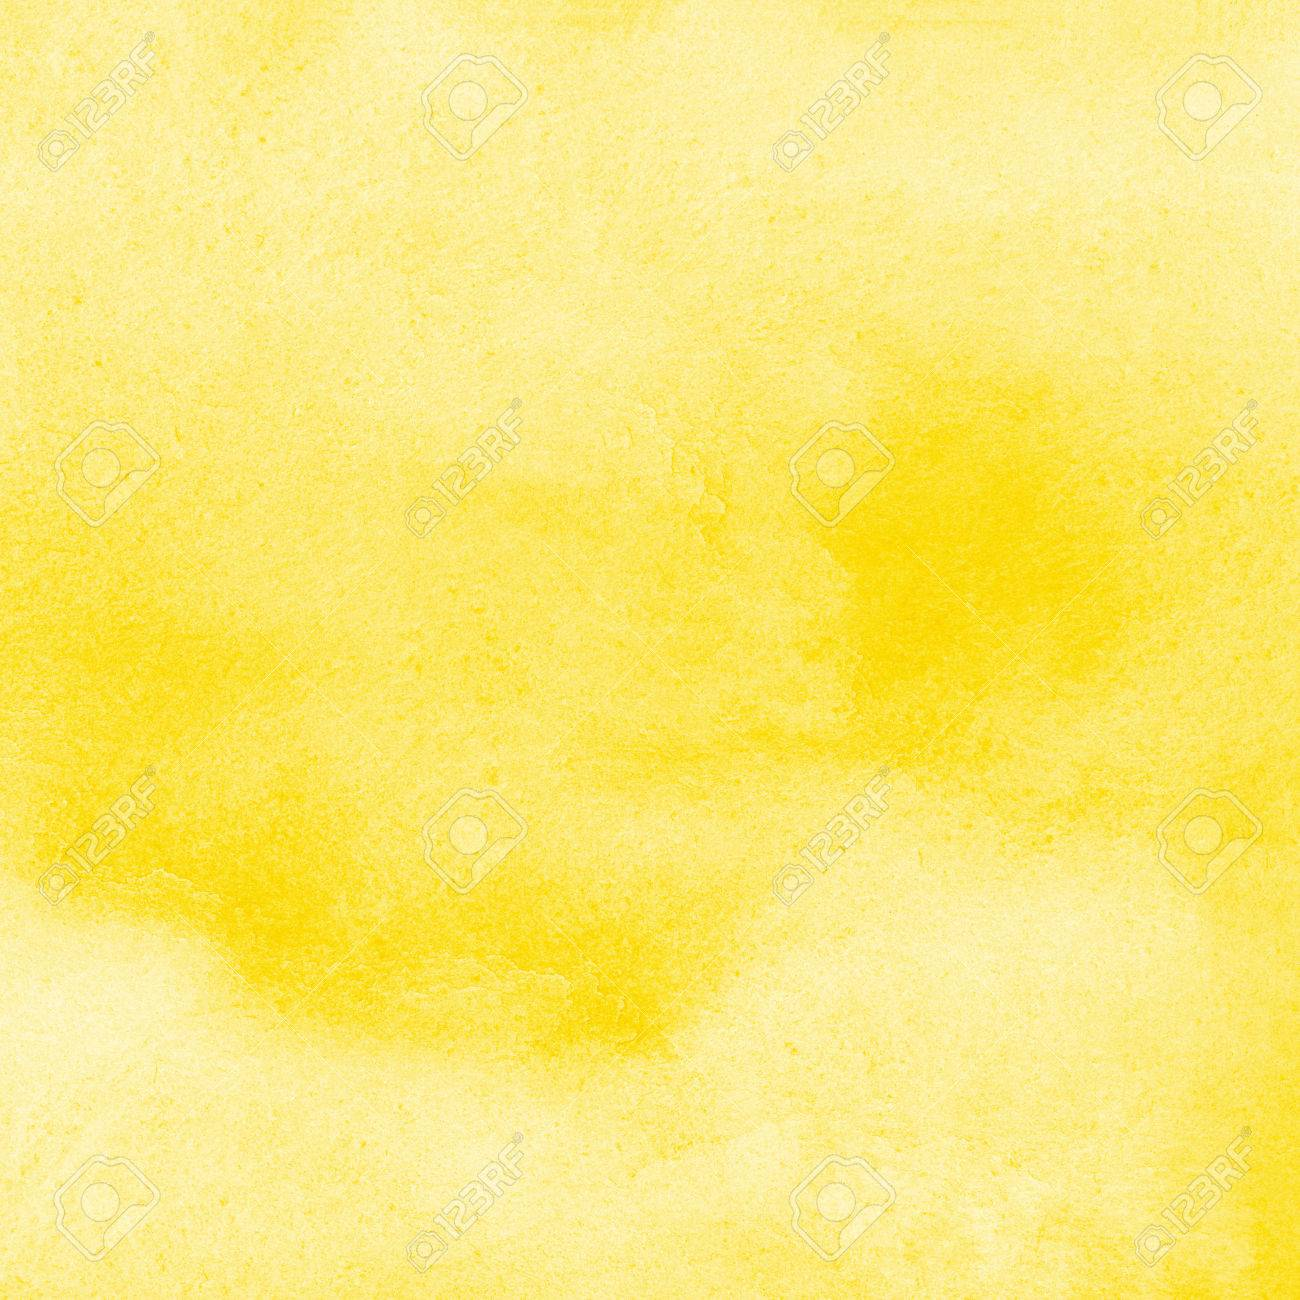 Yellow watercolor square background with stains. Watercolour texture. Hand drawn abstract aquarelle fill. Template for cards, banners, posters. - 74355172